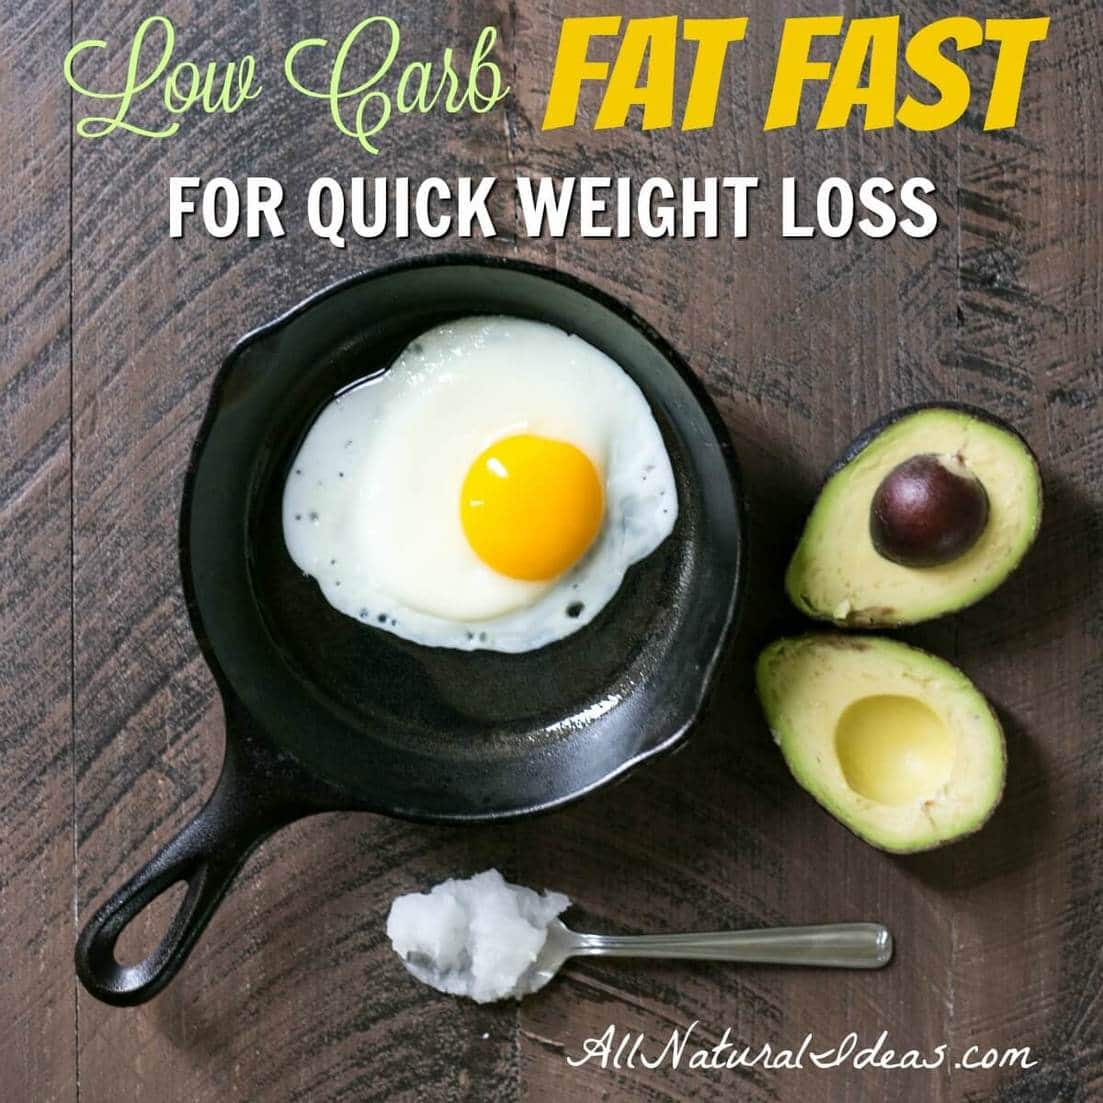 Low carb fast fast diet plan for quick weight loss